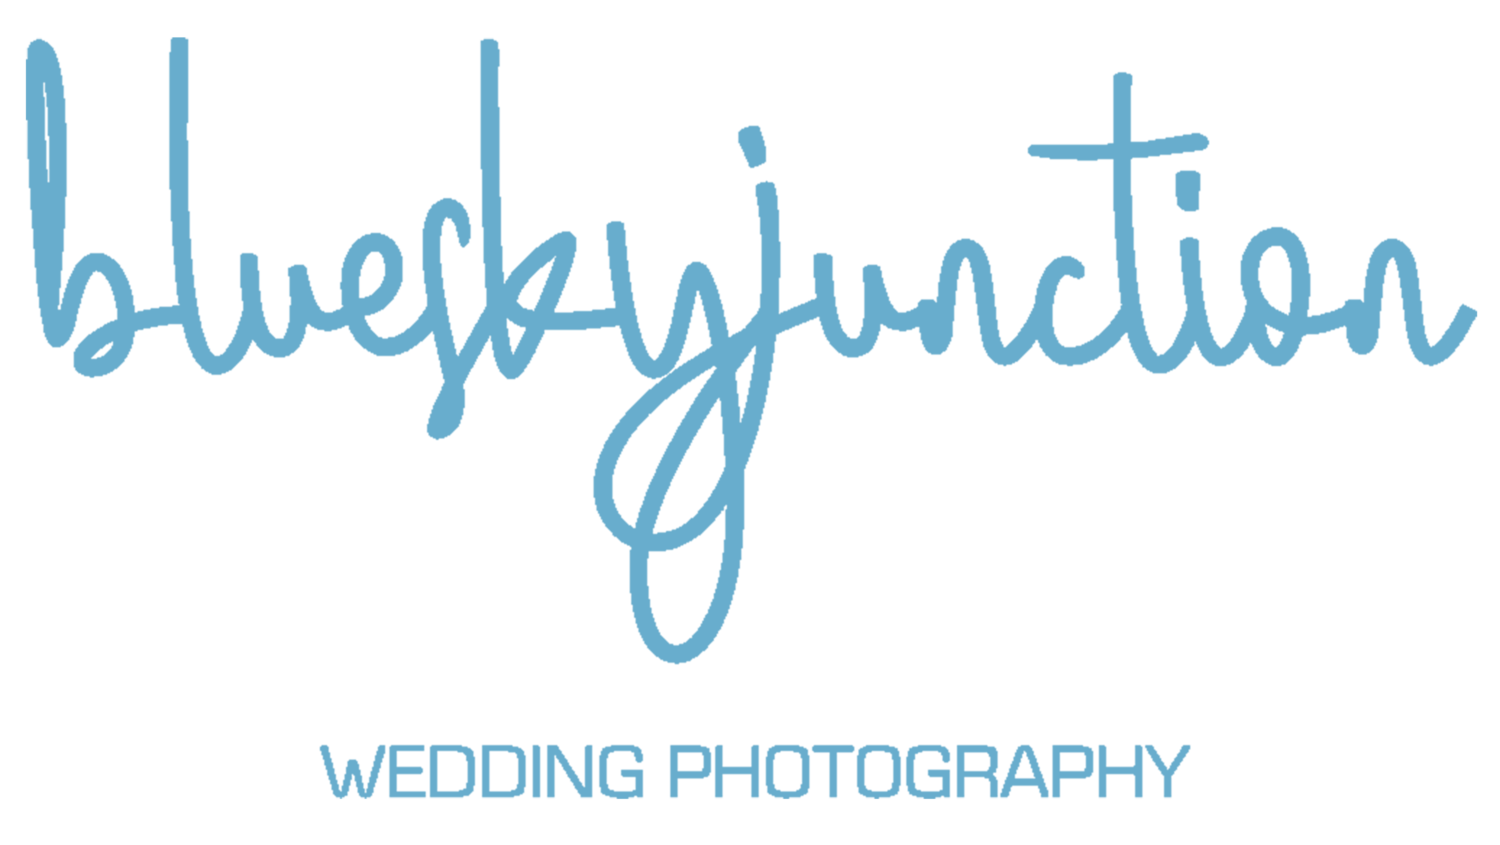 blueskyjunction wedding photography - Natural & Relaxed Documentary Photographer